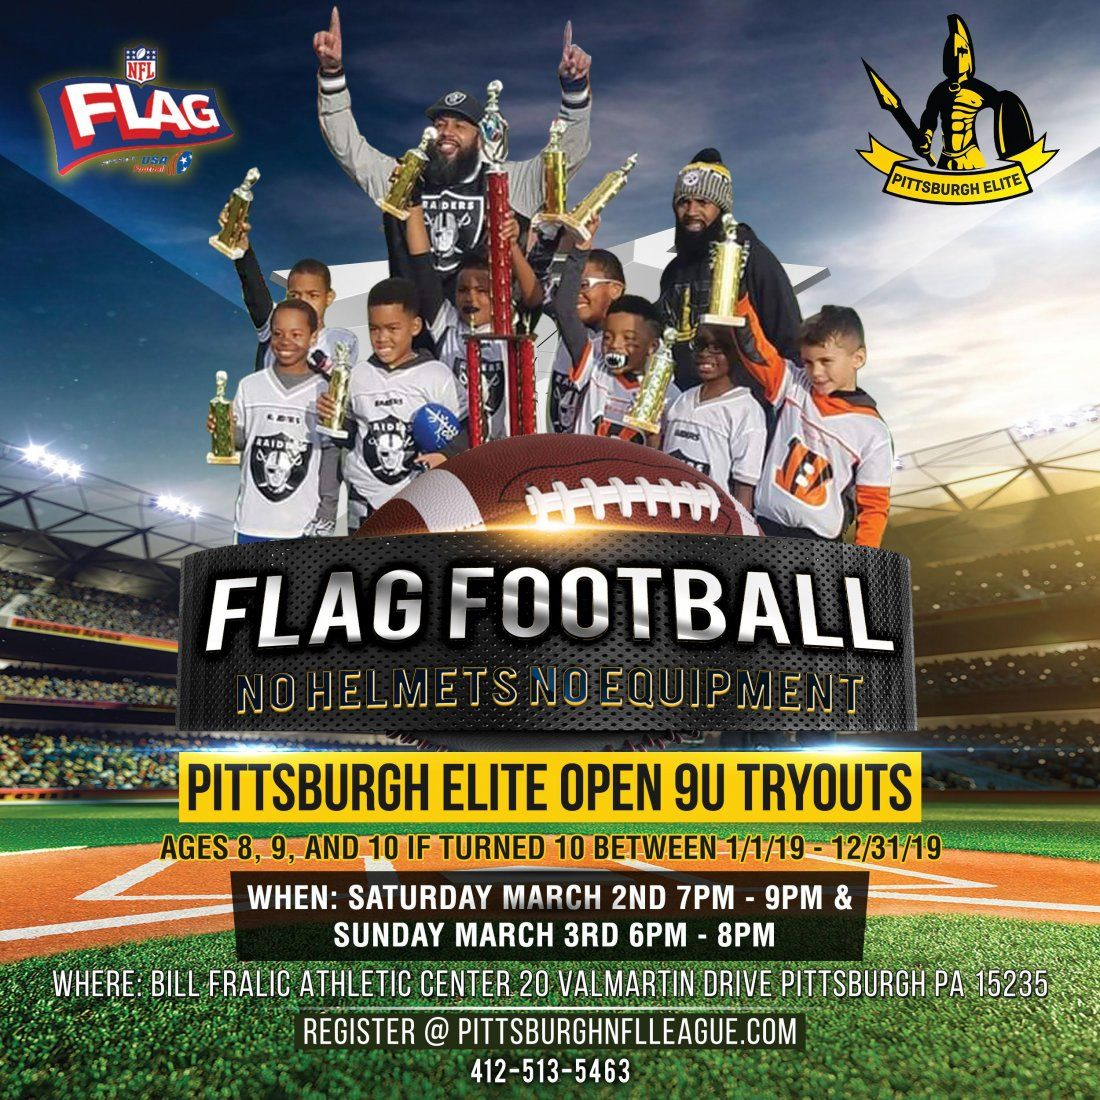 PITTSBURGH ELITE FLAG FOOTBALL TRYOUTS